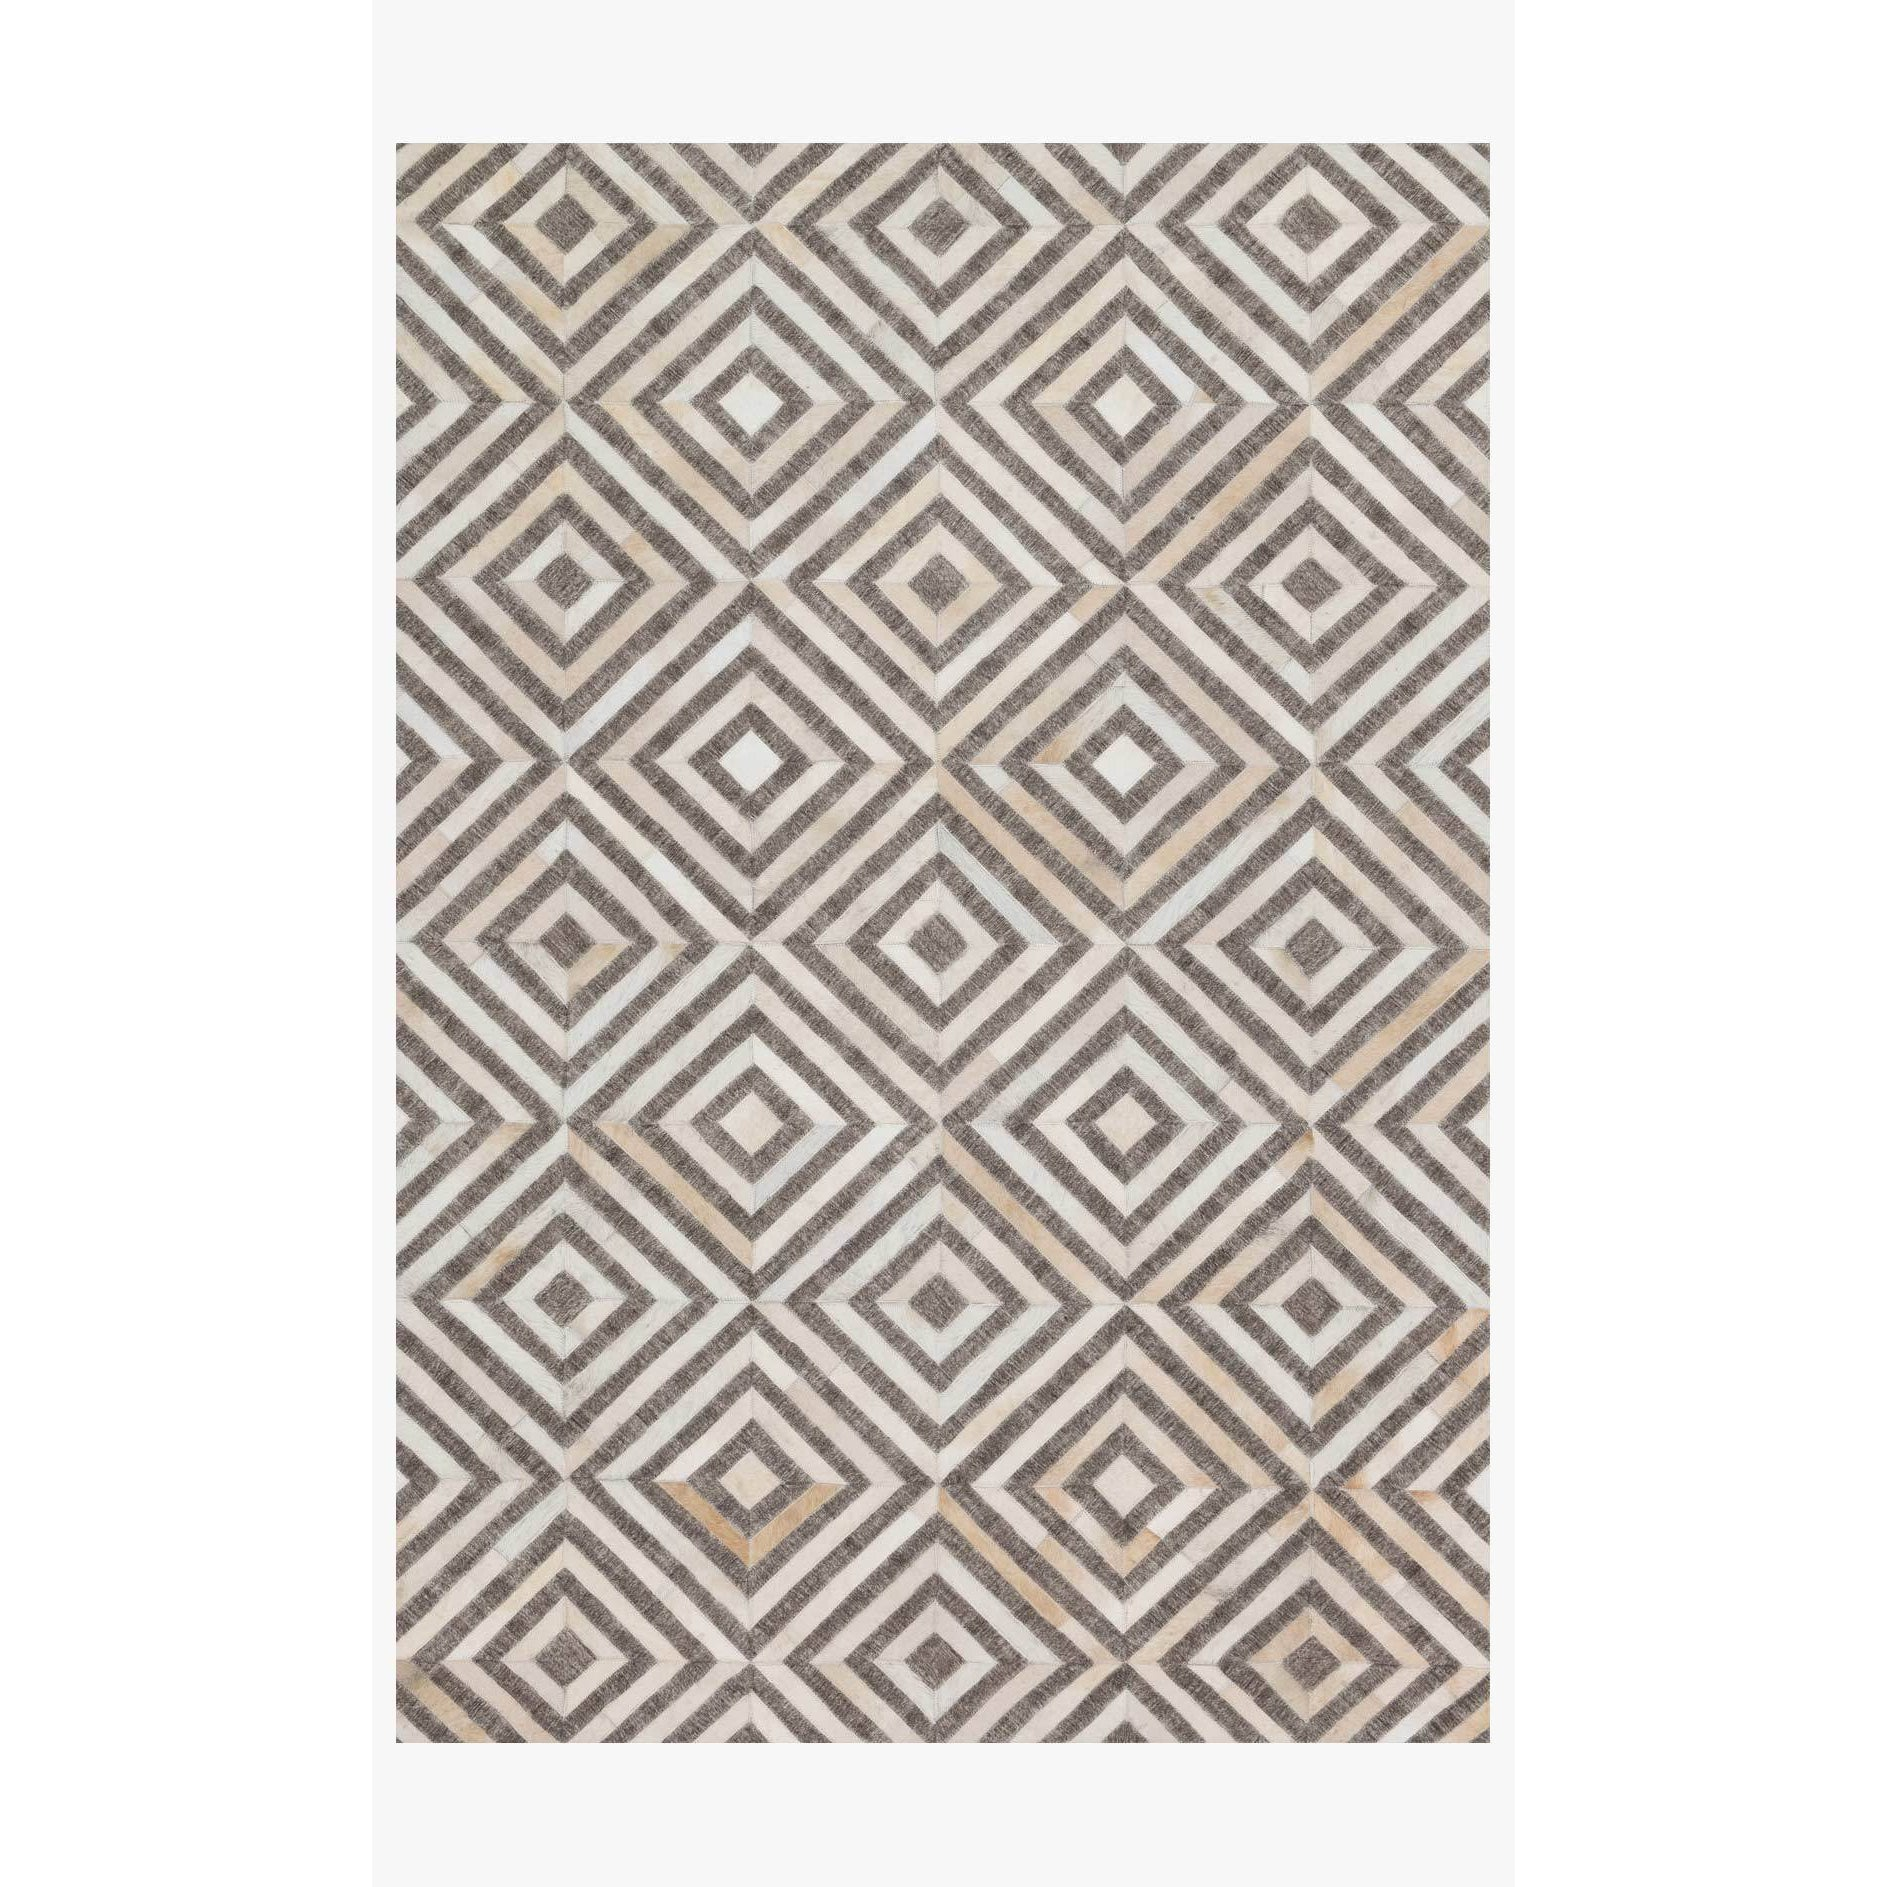 Dorado Rugs by Loloi- DB-03 - Taupe / Sand-Loloi Rugs-Blue Hand Home